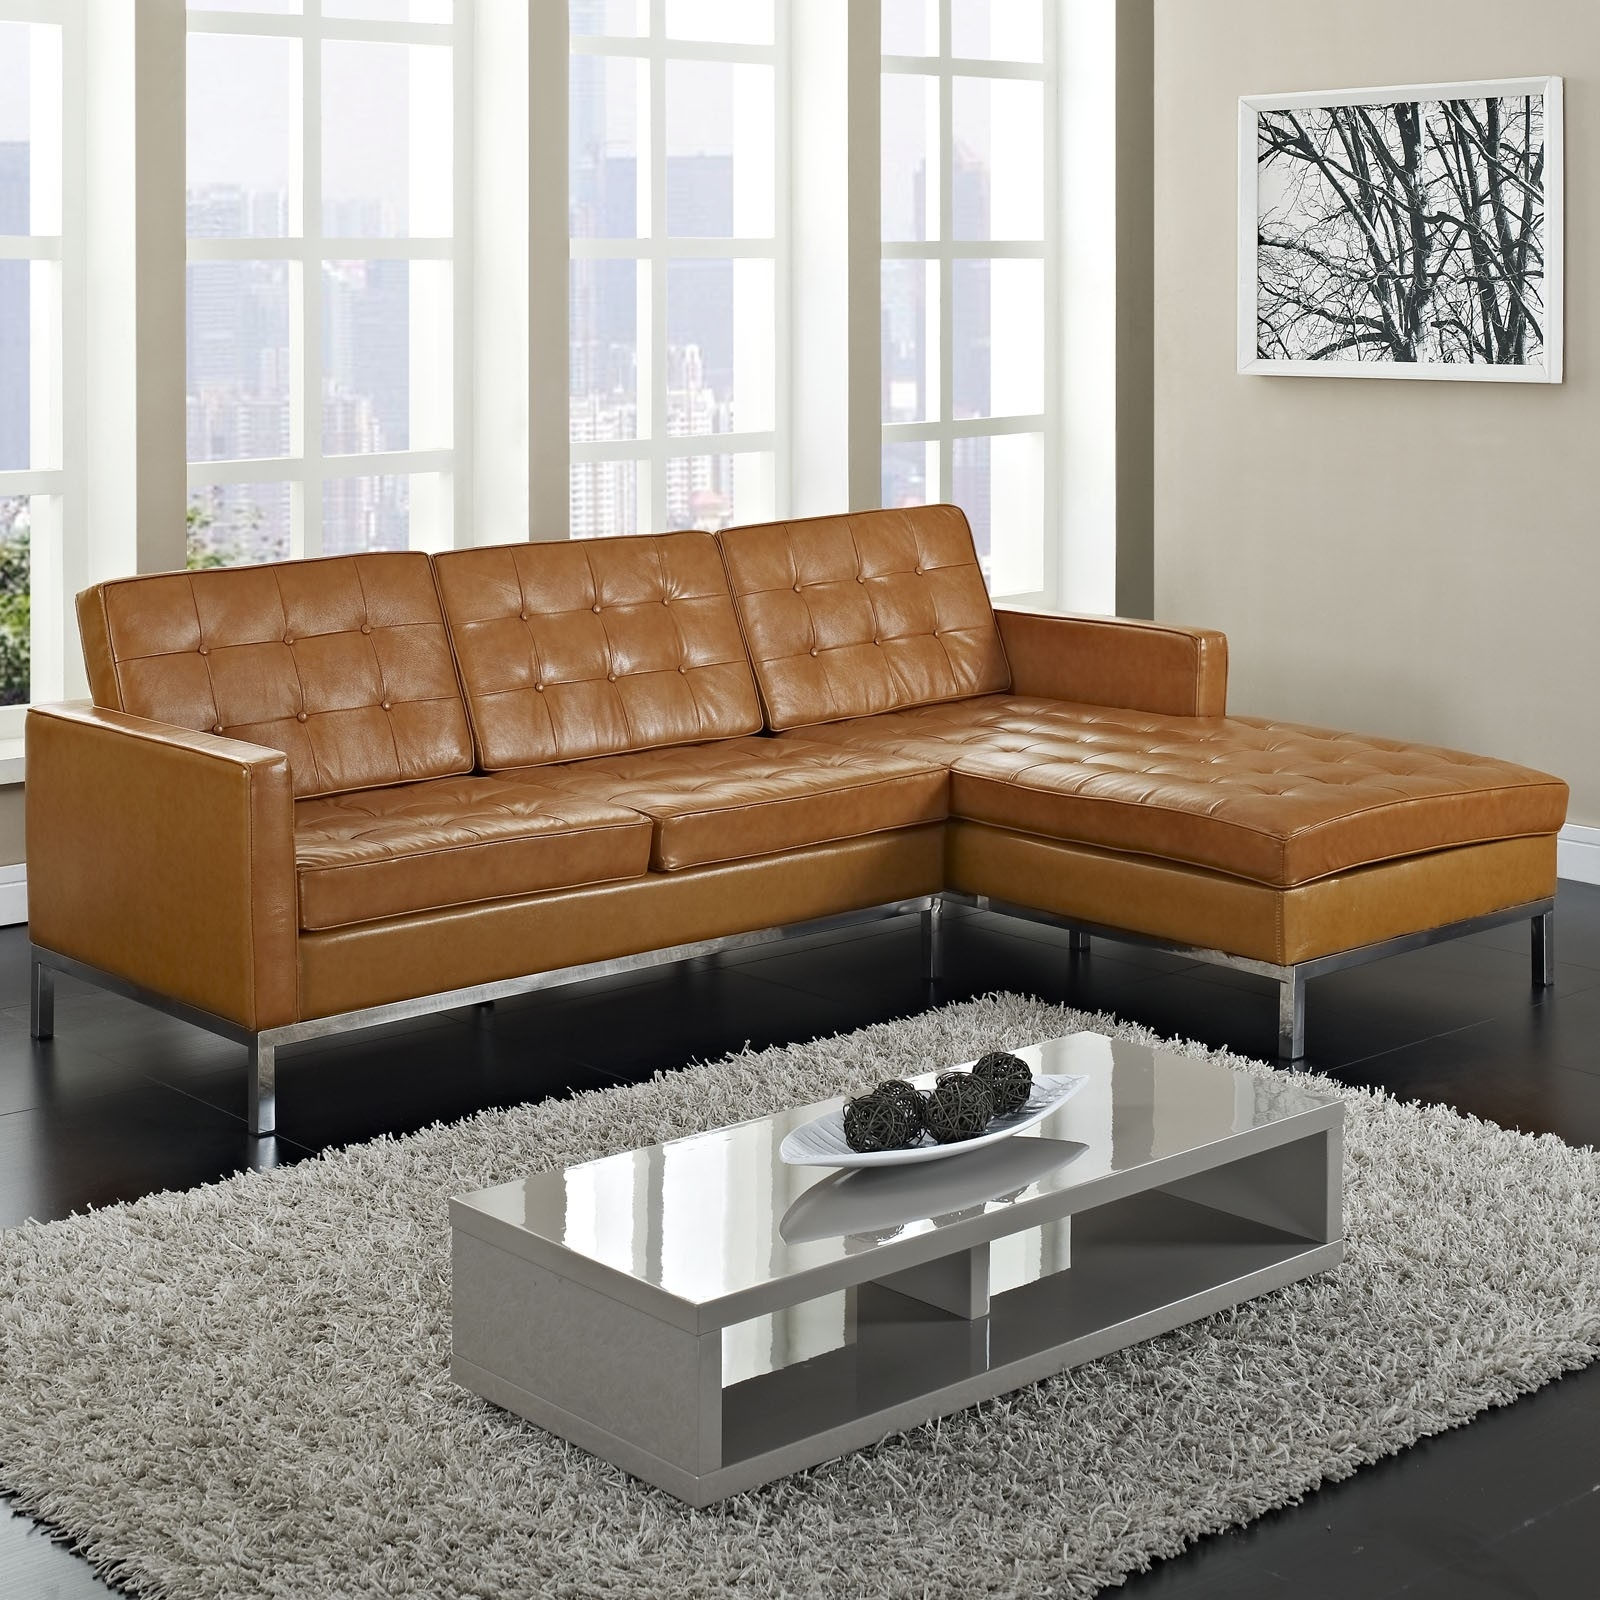 Furniture, Maximizing Small Living Room Spaces With 3 Piece Brown Regarding Sectional Sofas For Small Places (Image 9 of 10)